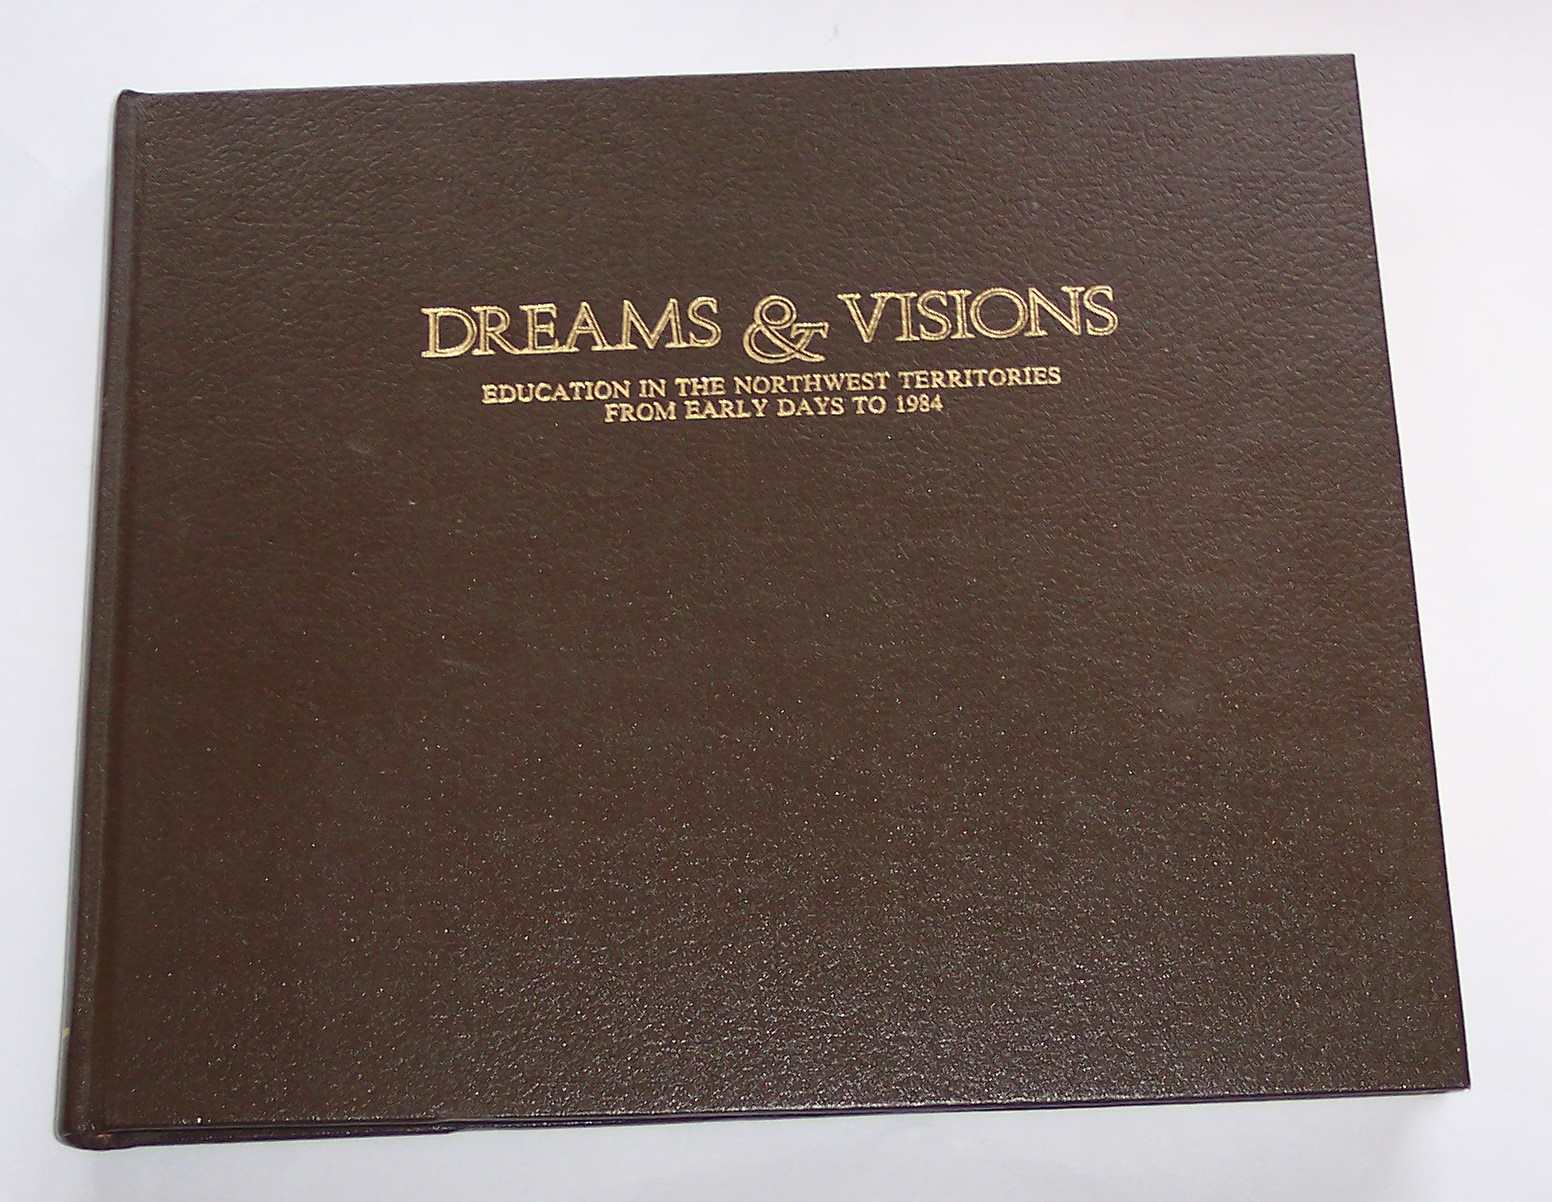 Image for Dreams & Visions Education in the Northwest Territories from Early Days to 1984